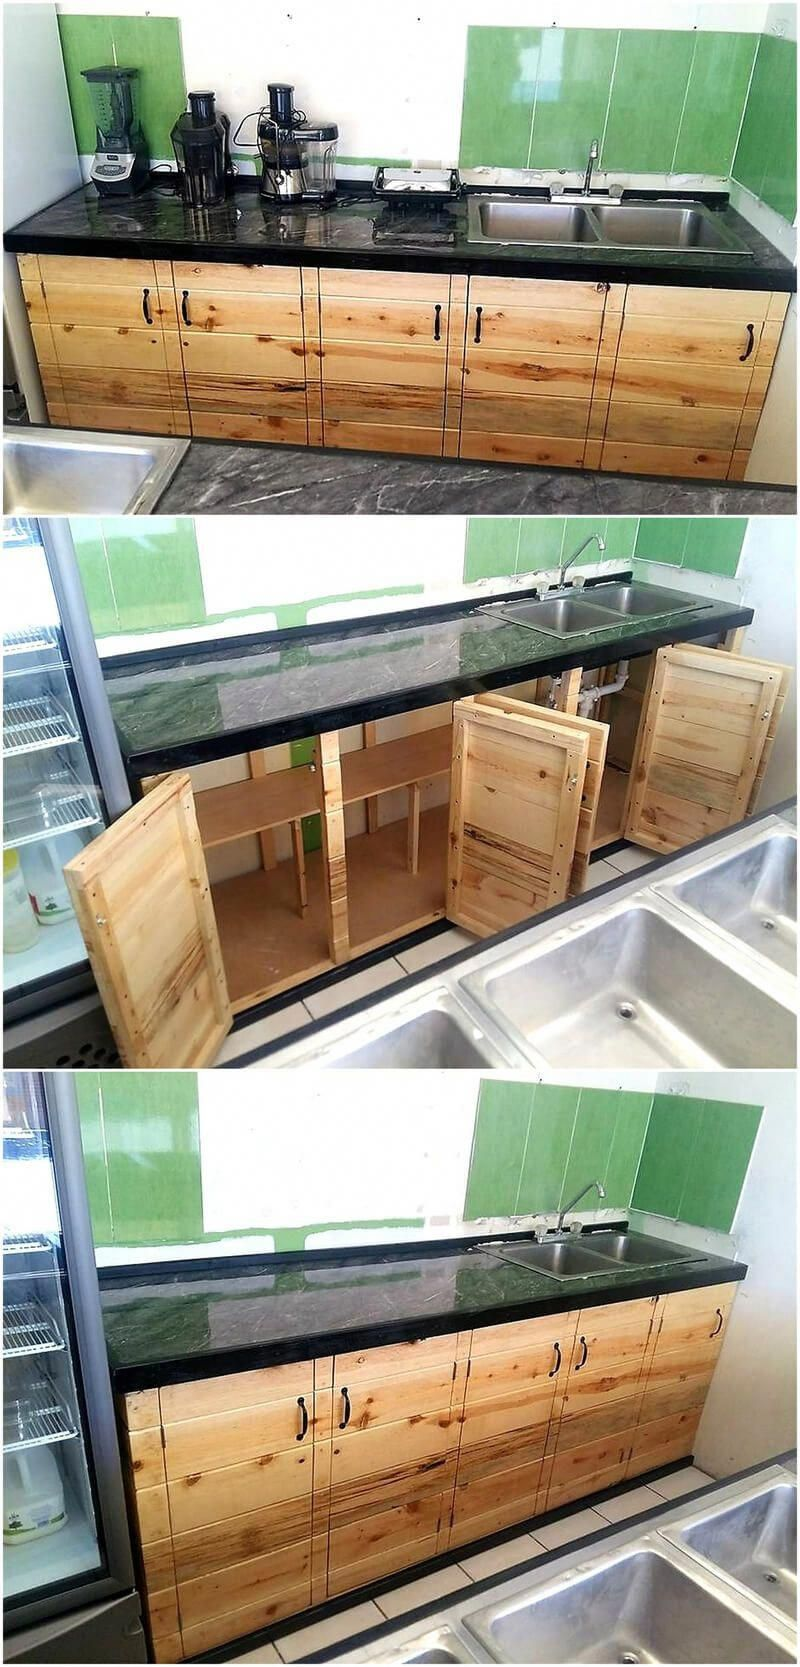 We Never Run Out Of Ideas When It Comes To Decorating Your Inner Or Outer Space Of House A Pallet Kitchen Cabinets Diy Kitchen Cabinets Makeover Pallet Kitchen